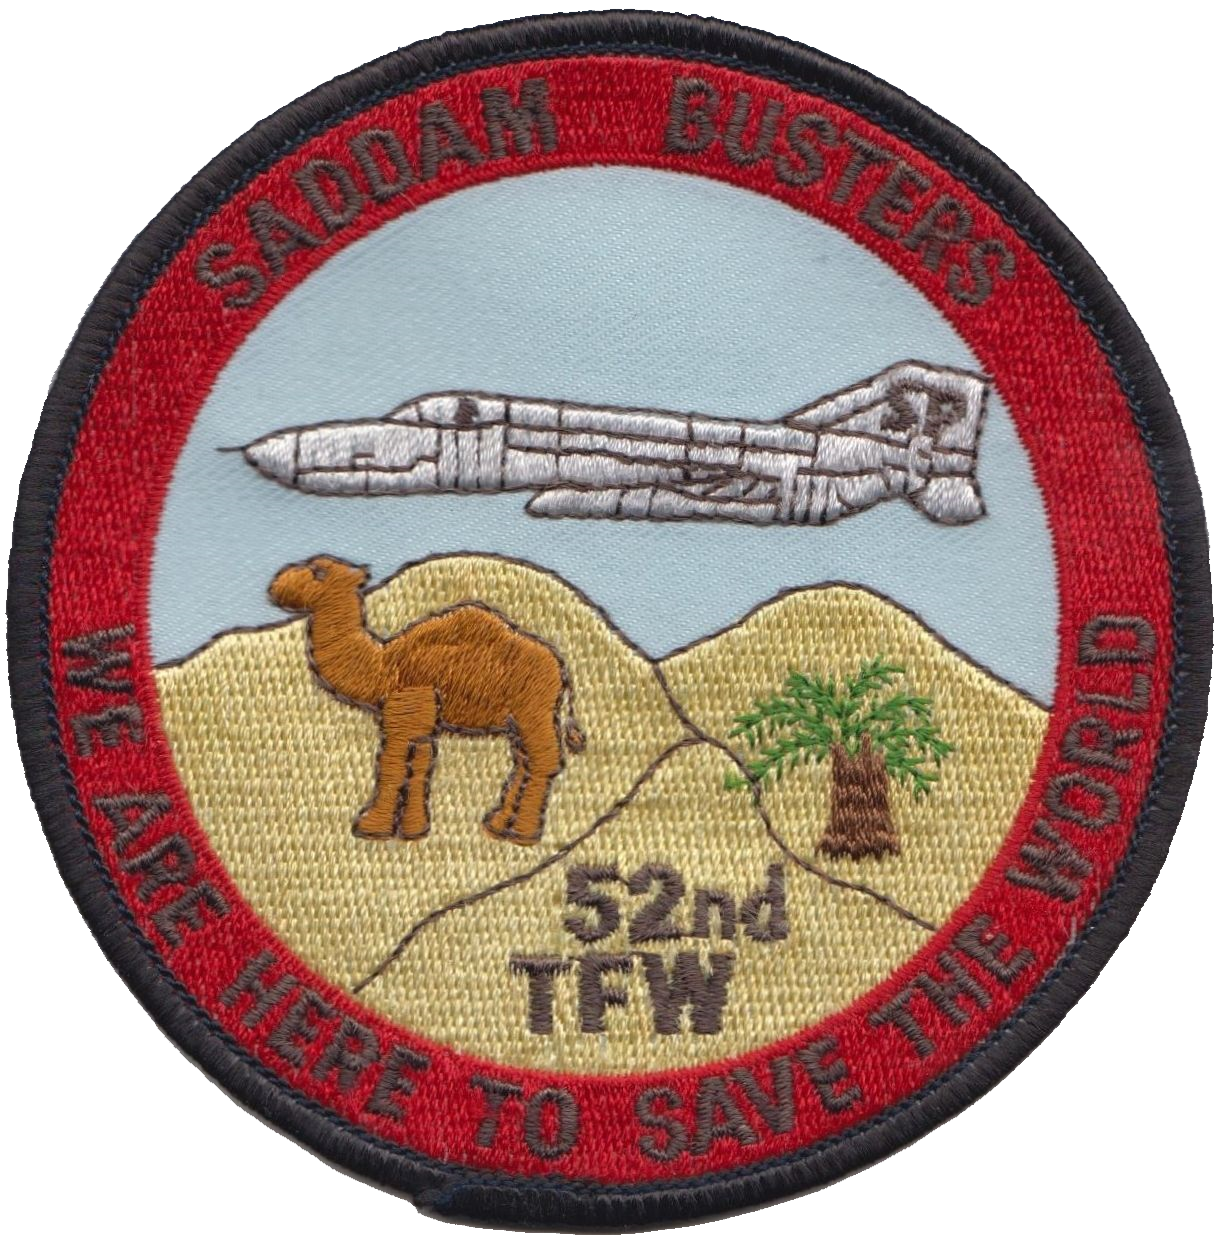 52d-tactical-fighter-wing-tfw-saddam-bus